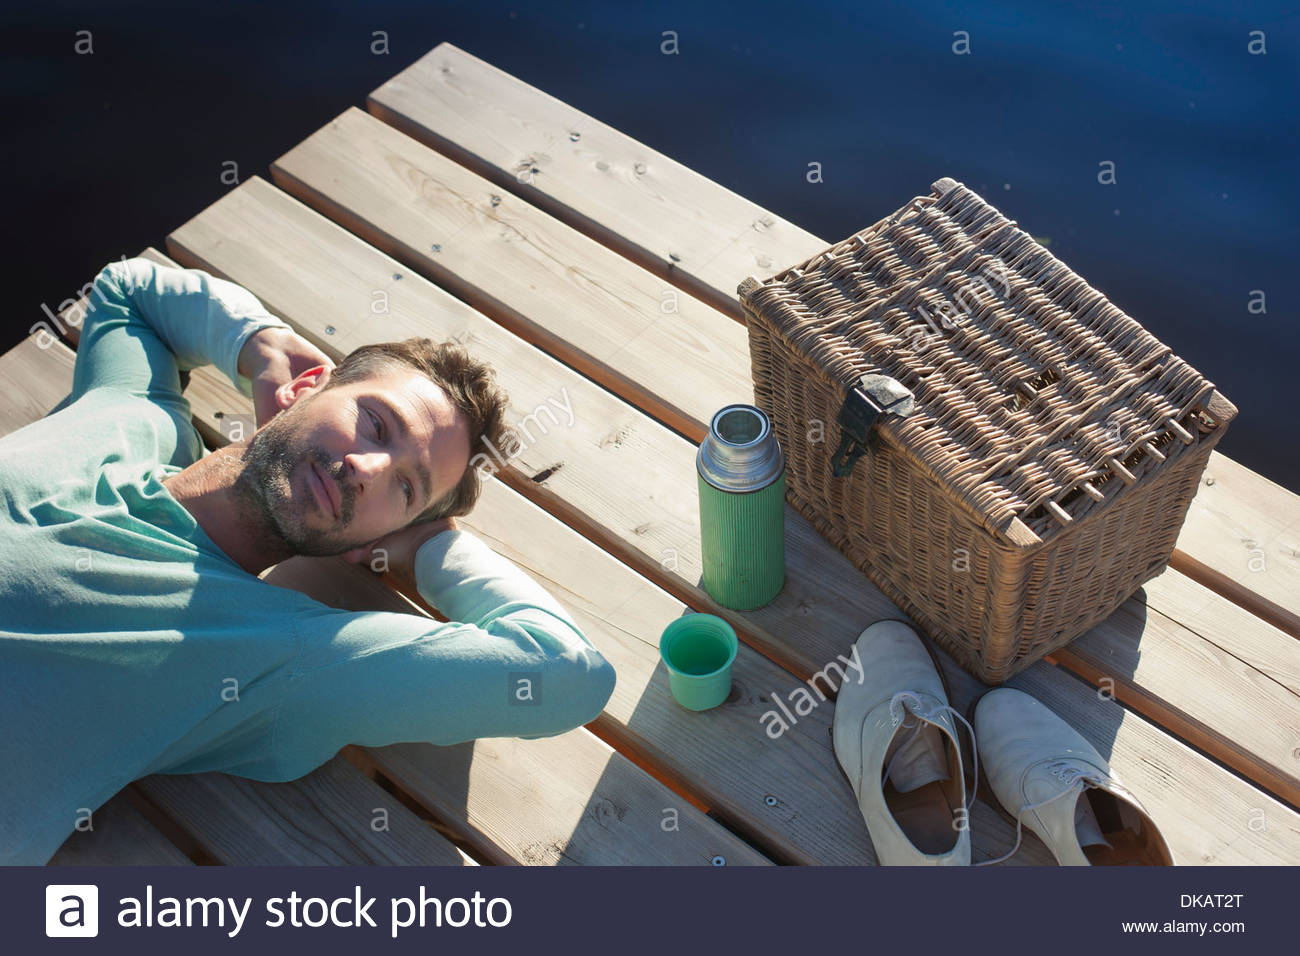 Mature man lying on decking by lake with picnic hamper - Stock Image